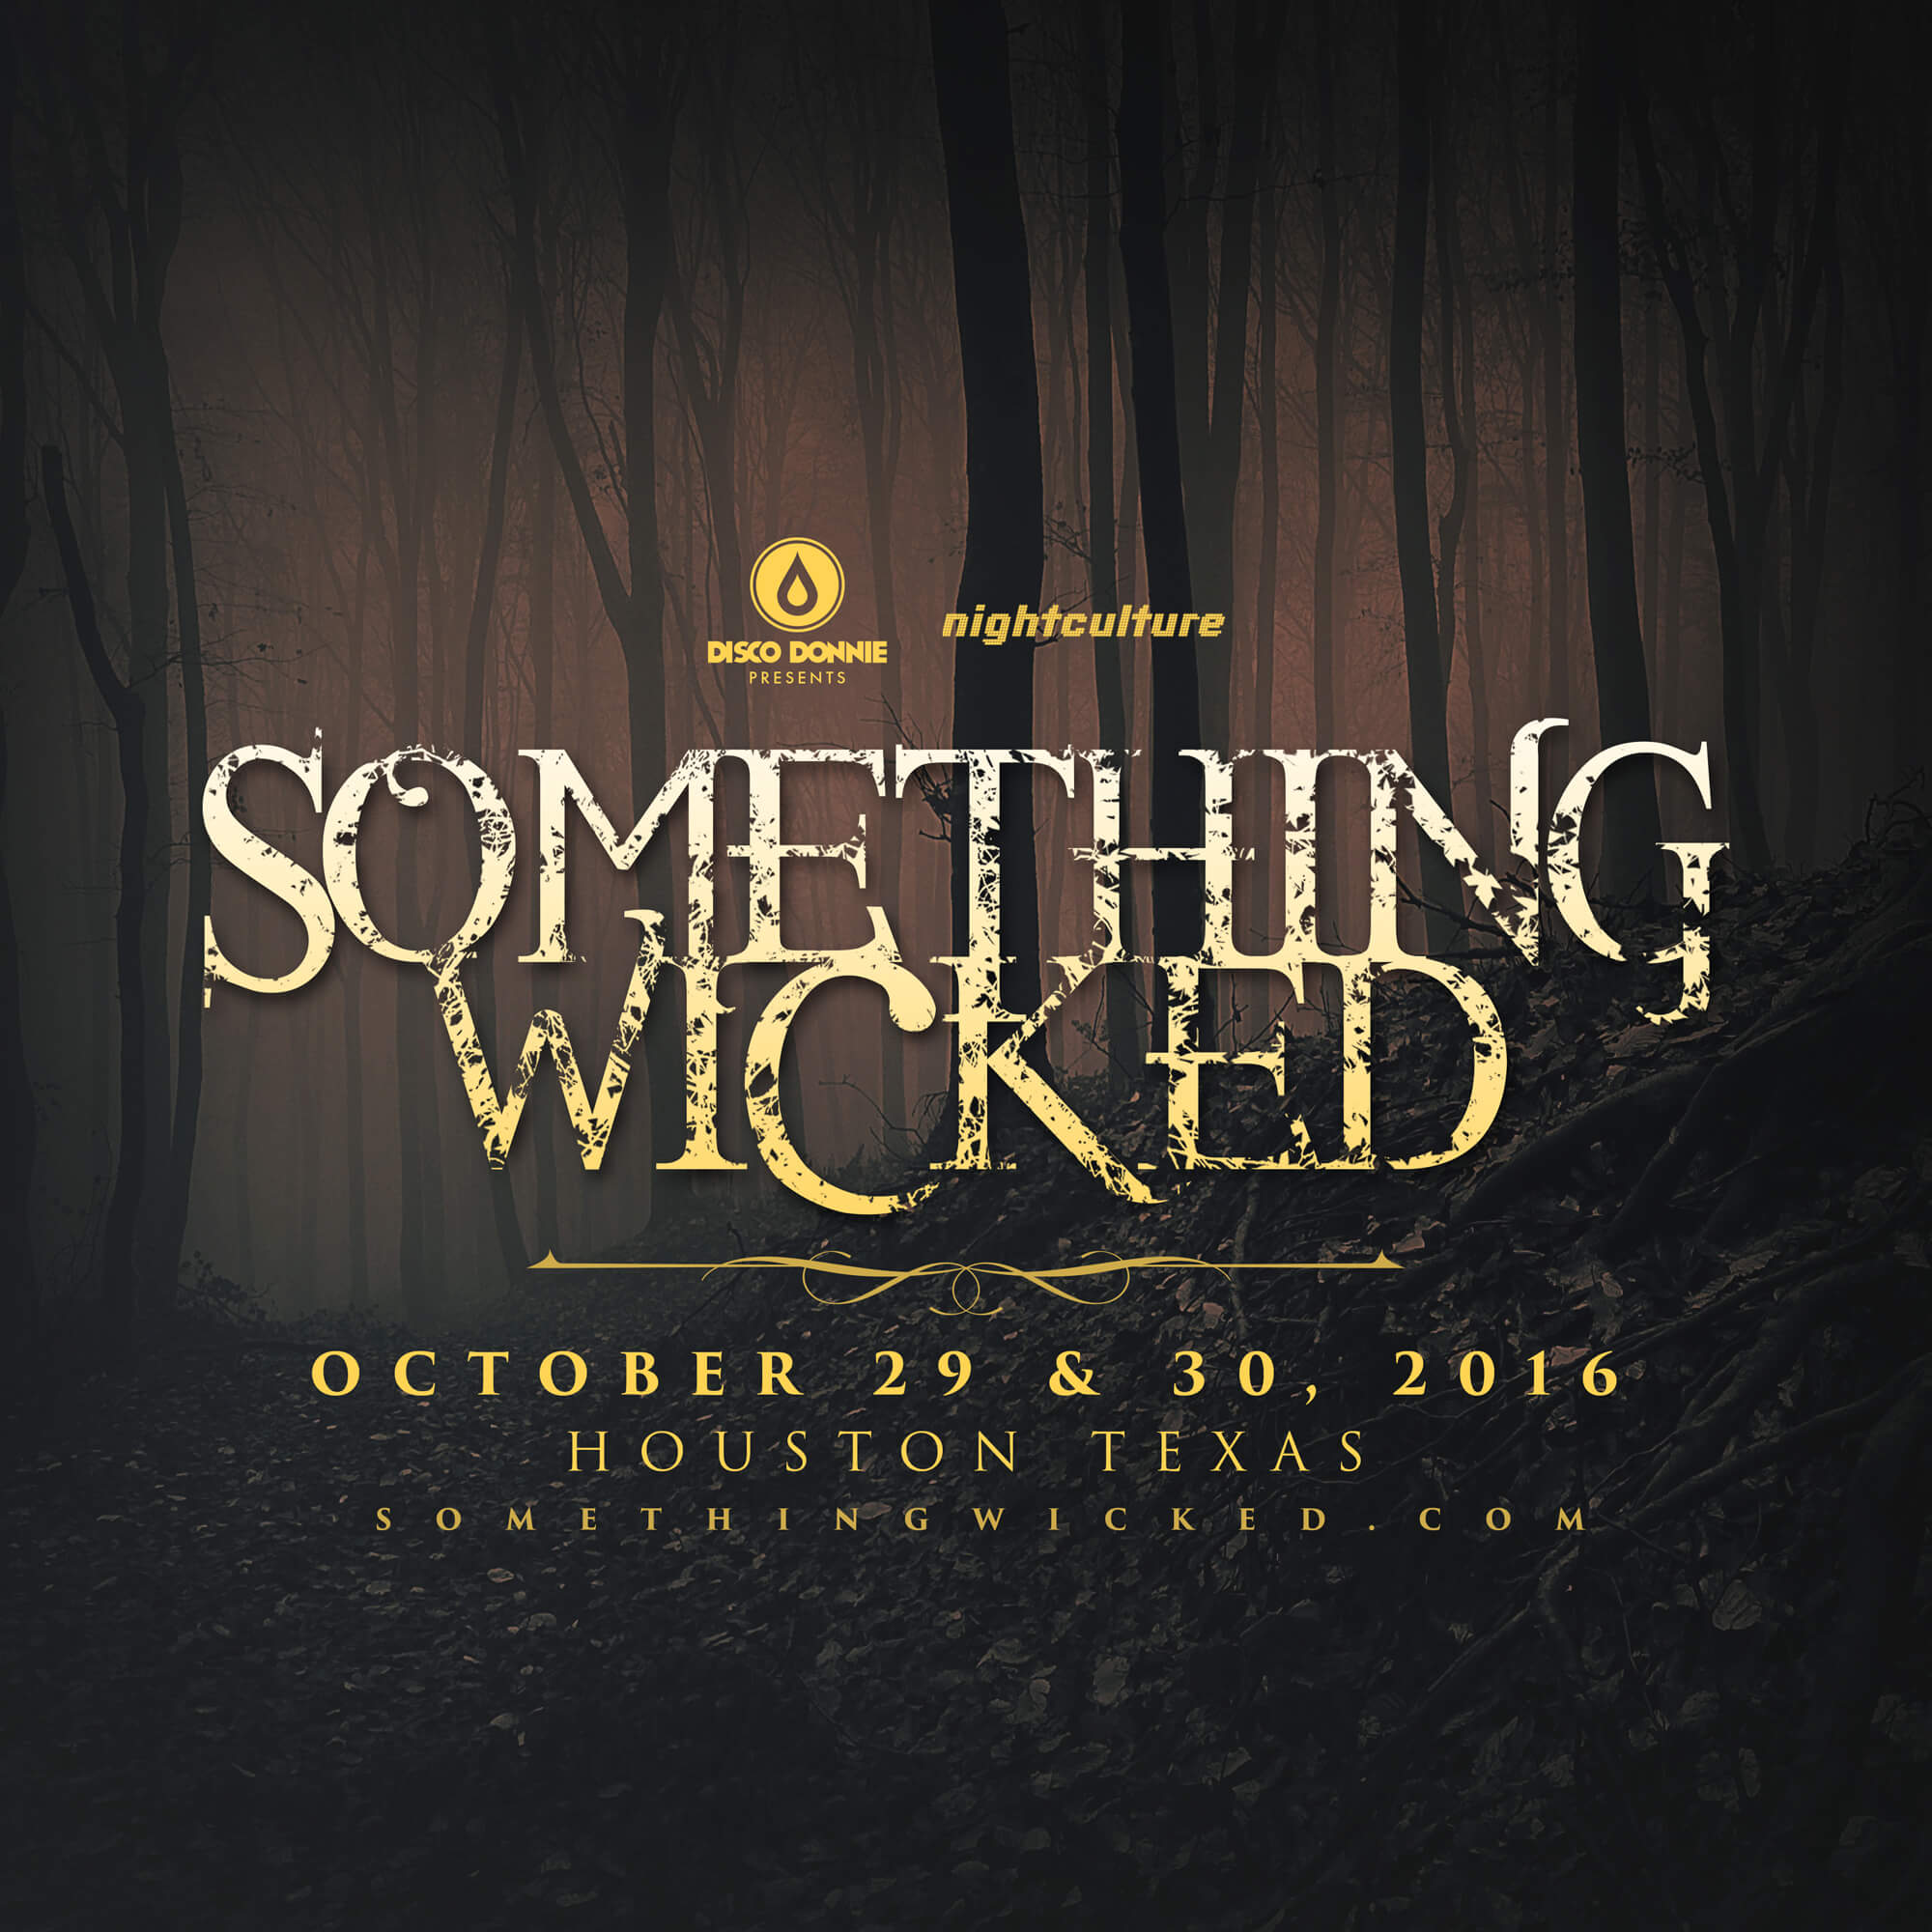 Something Wicked 2016 in Houston, Texas